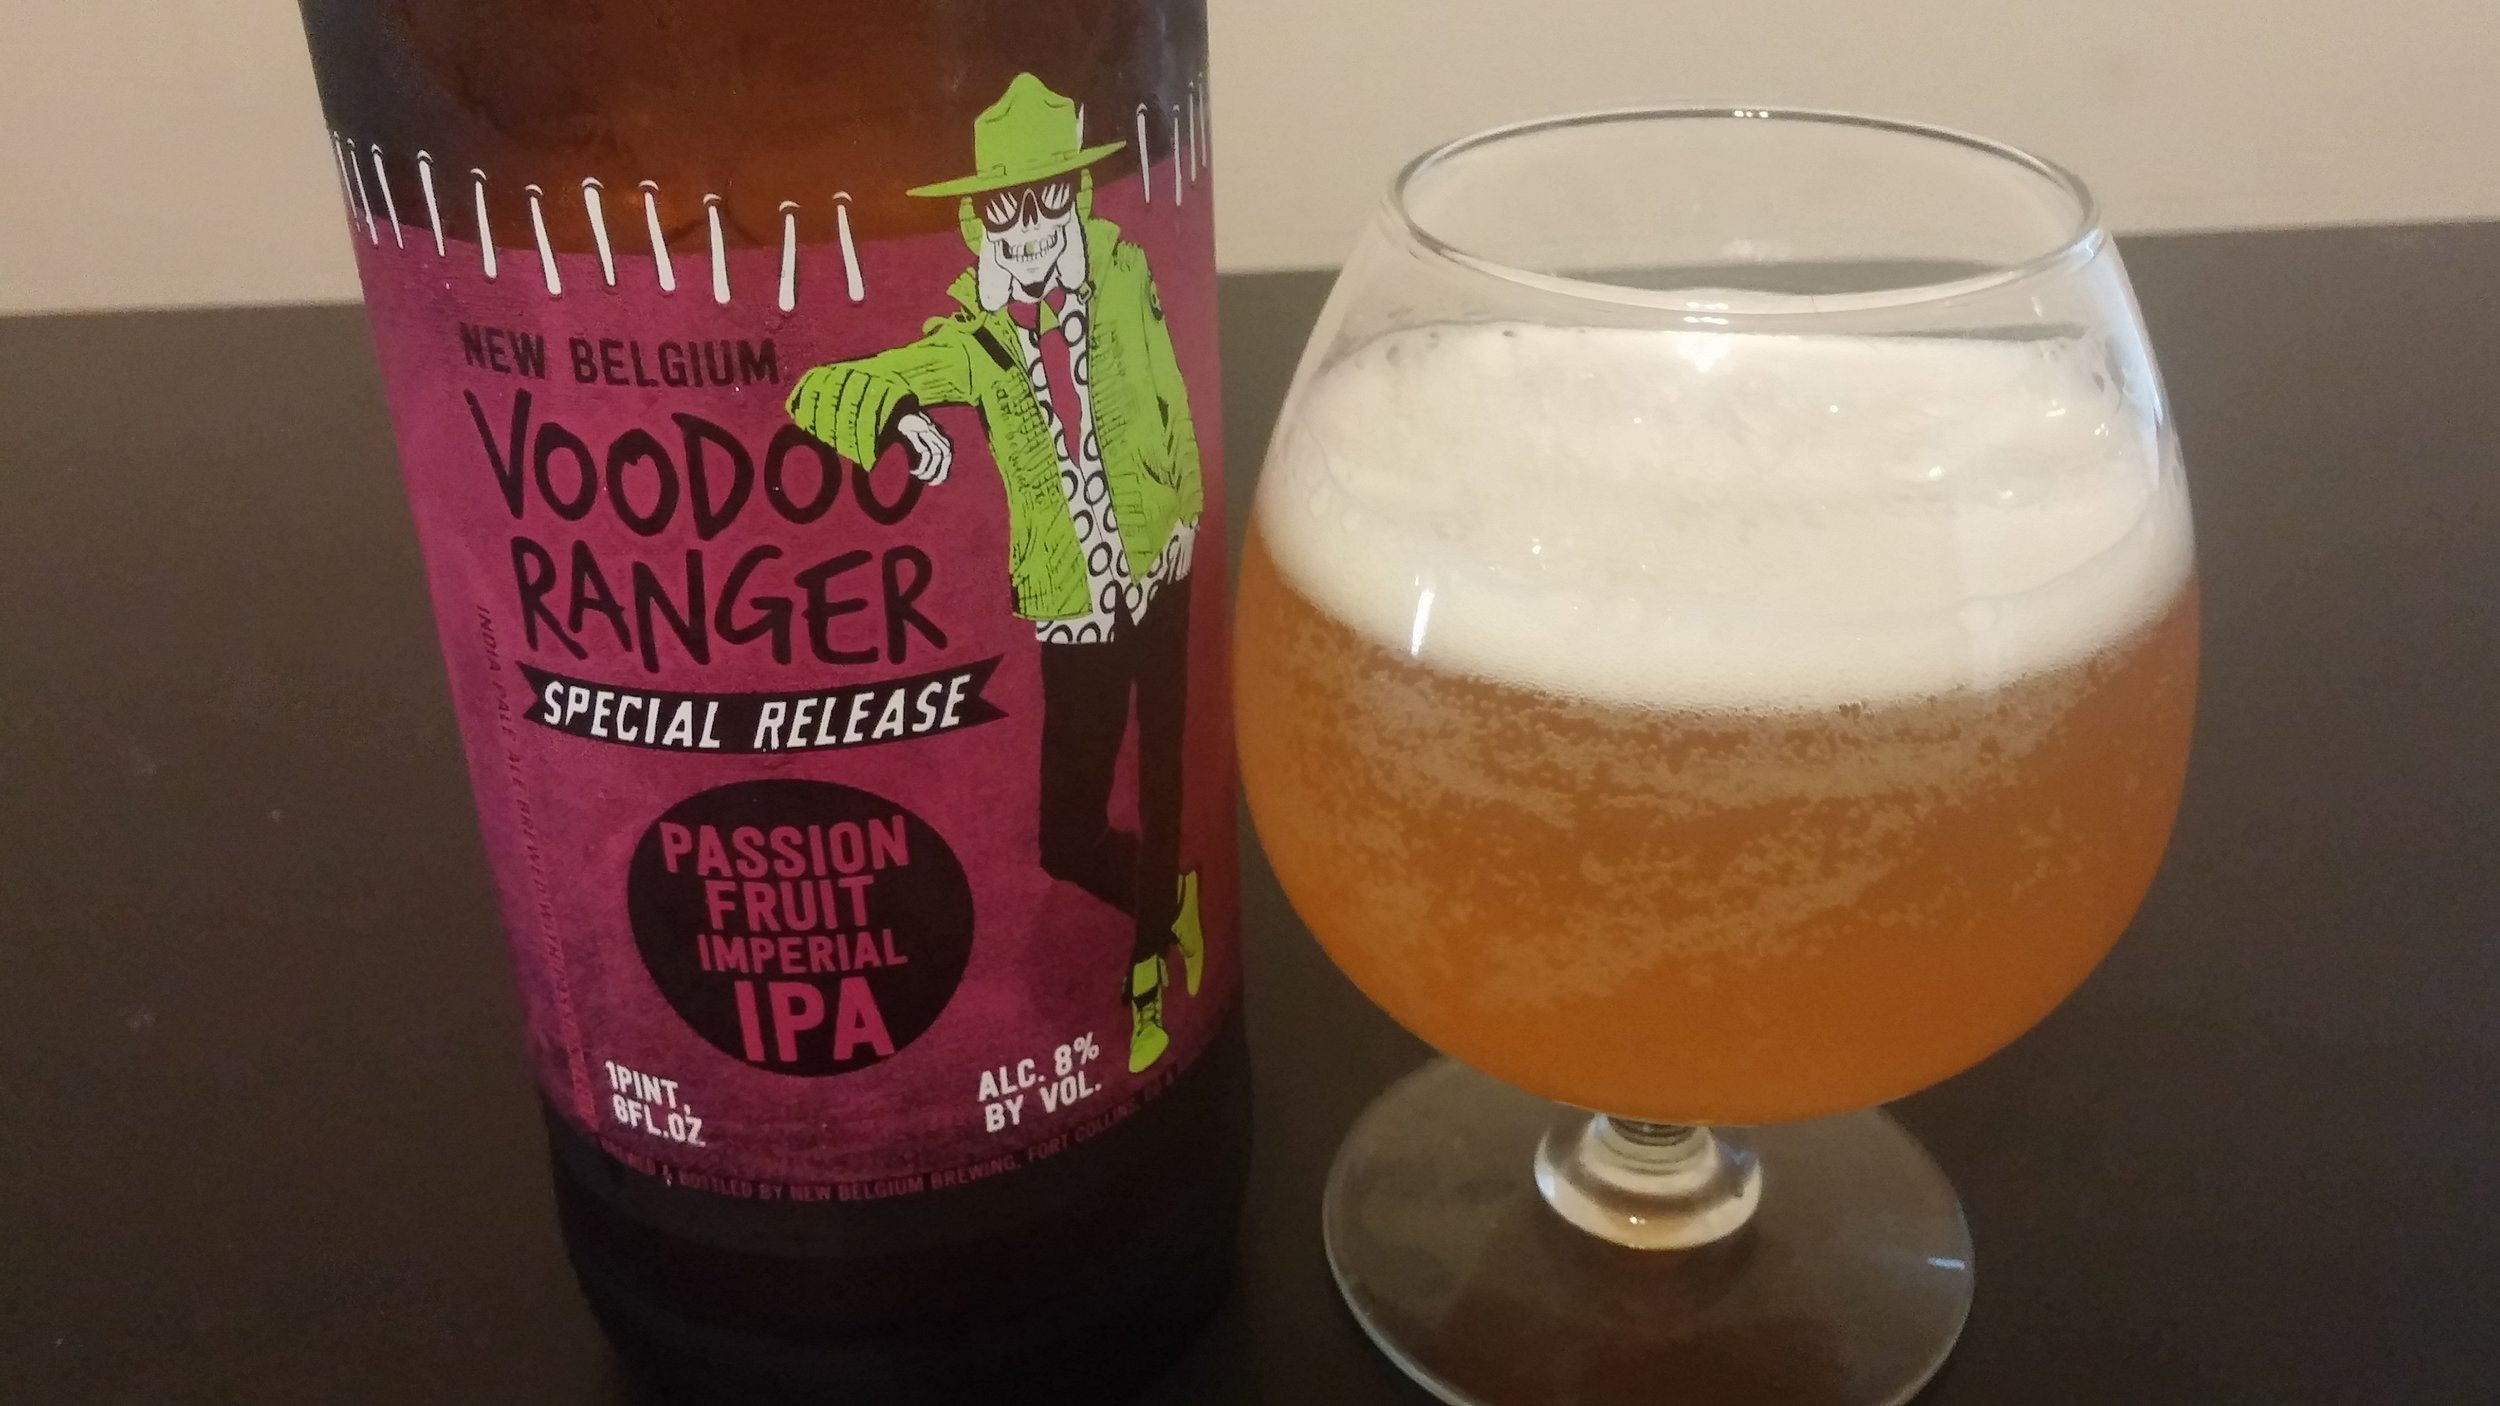 Voodoo ranger passion fruit ipa - Photo by Kevin Gibson